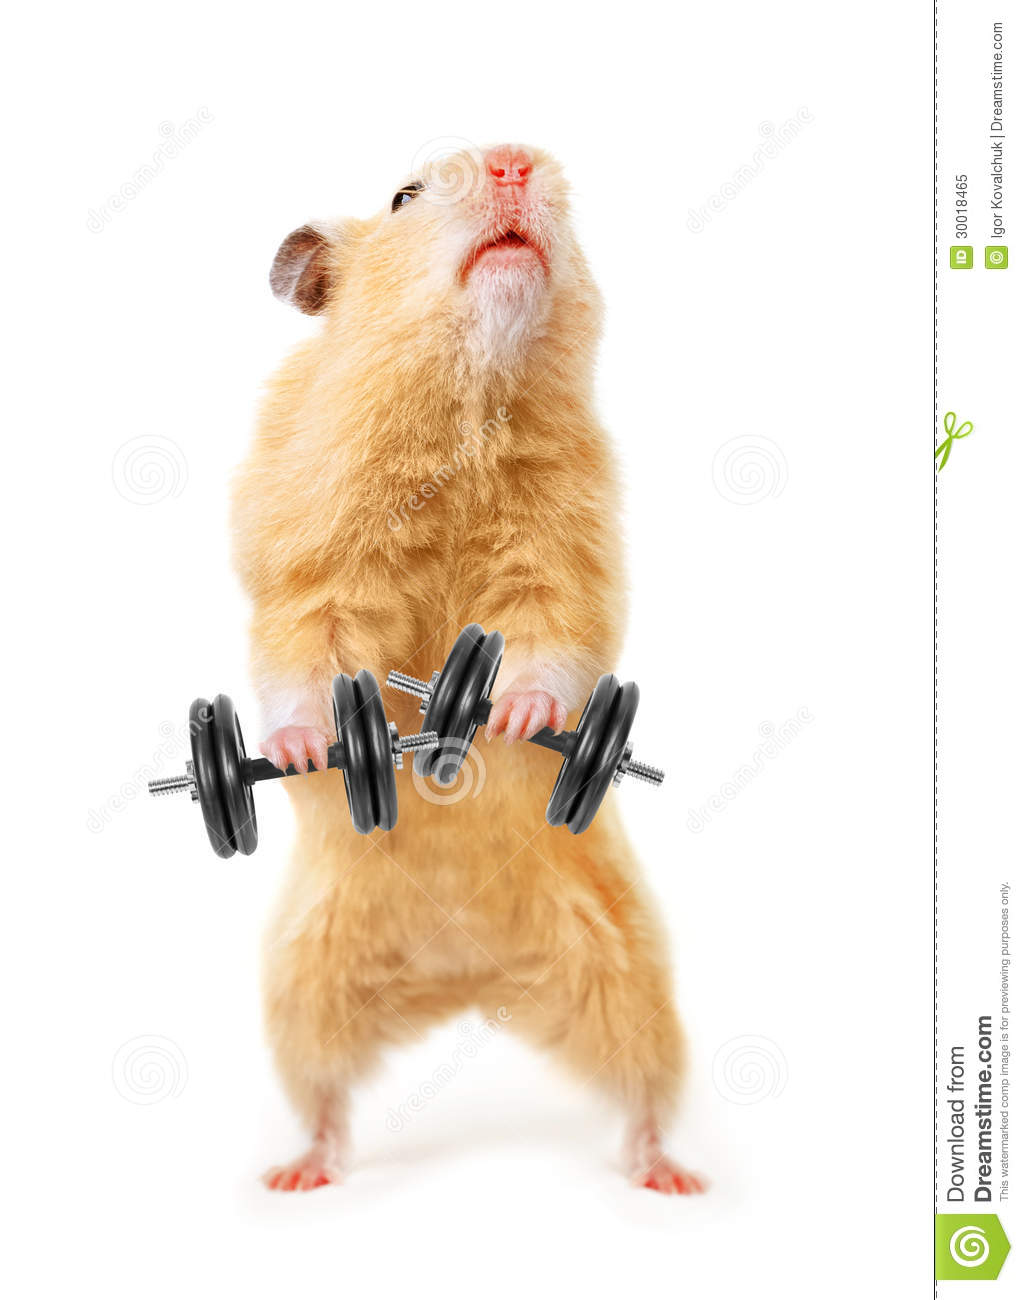 Hamster Royalty Free Stock Photo - Image: 30018465